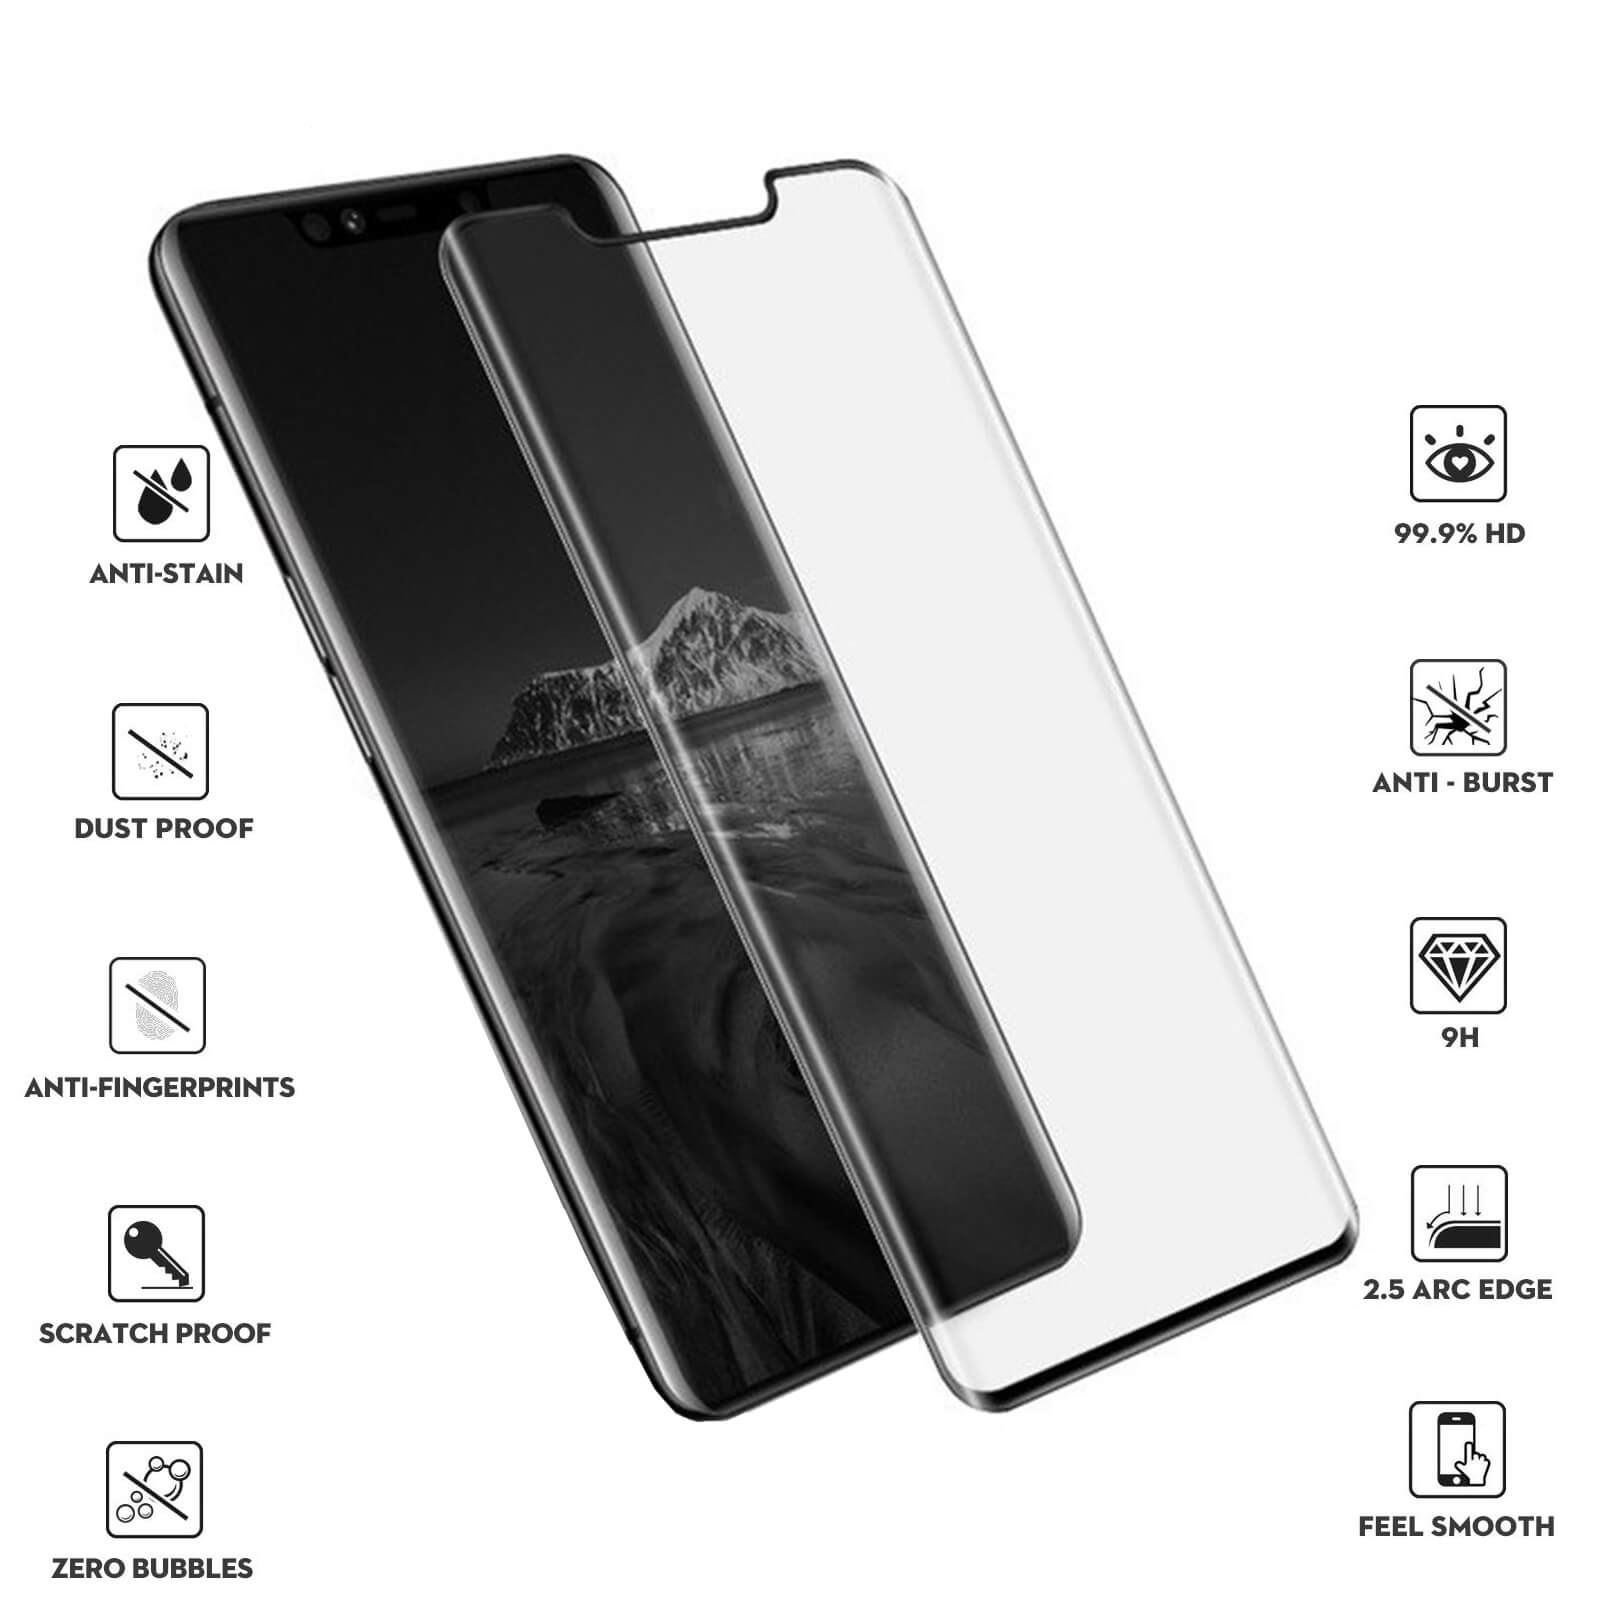 Huawei Mate 20 Pro Tempered Glass Screen Protector - Black